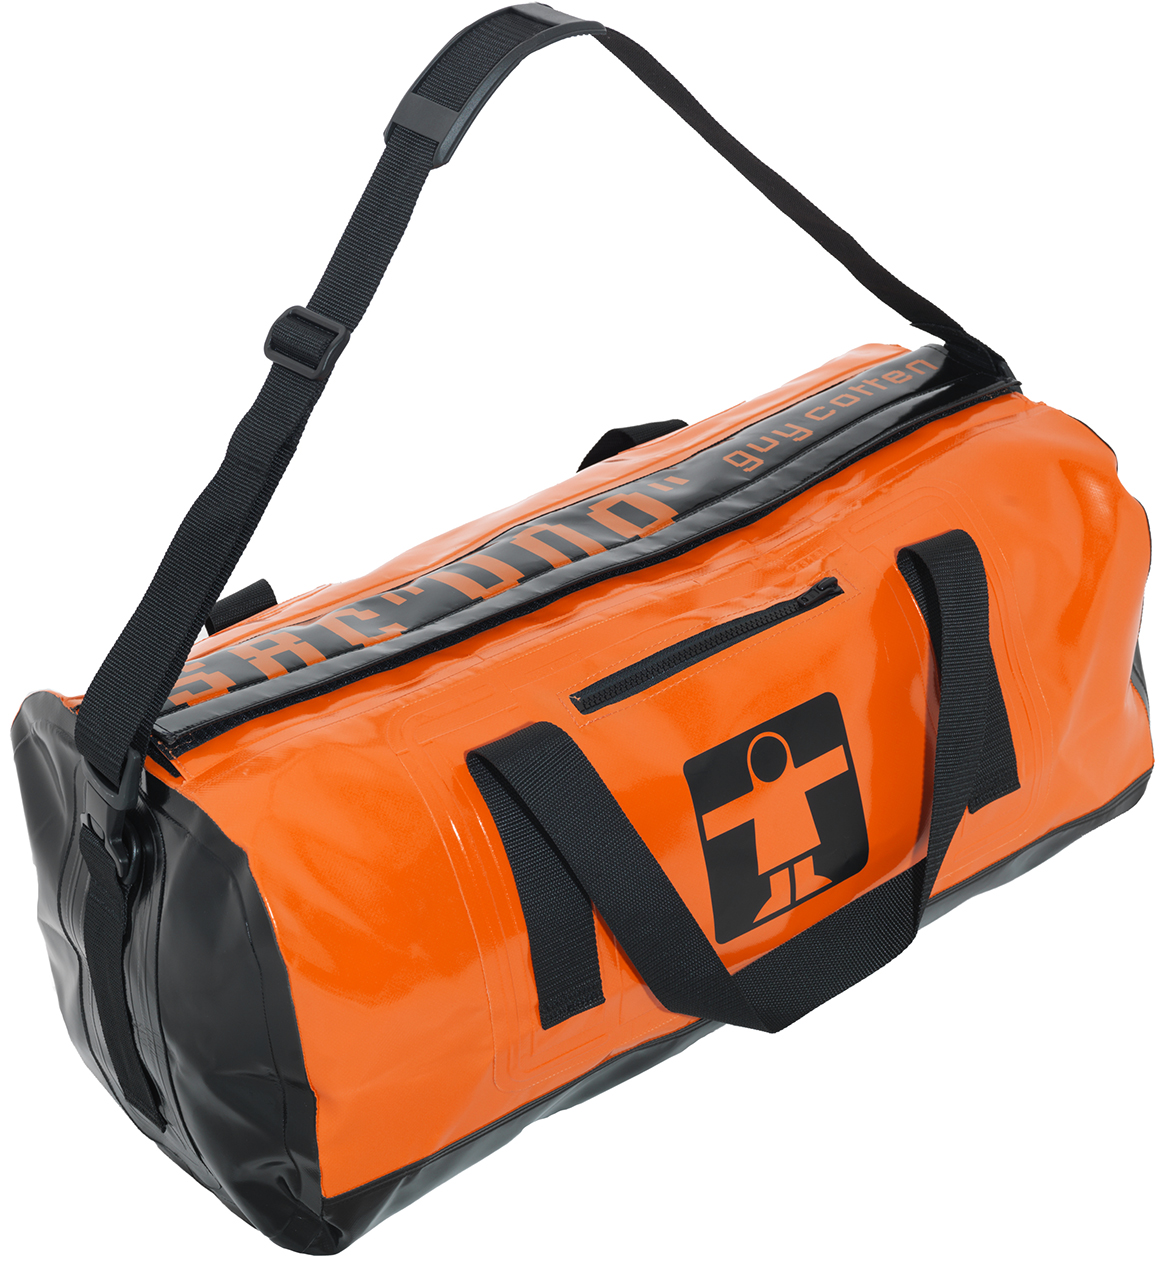 UNO waterproof holdall bag